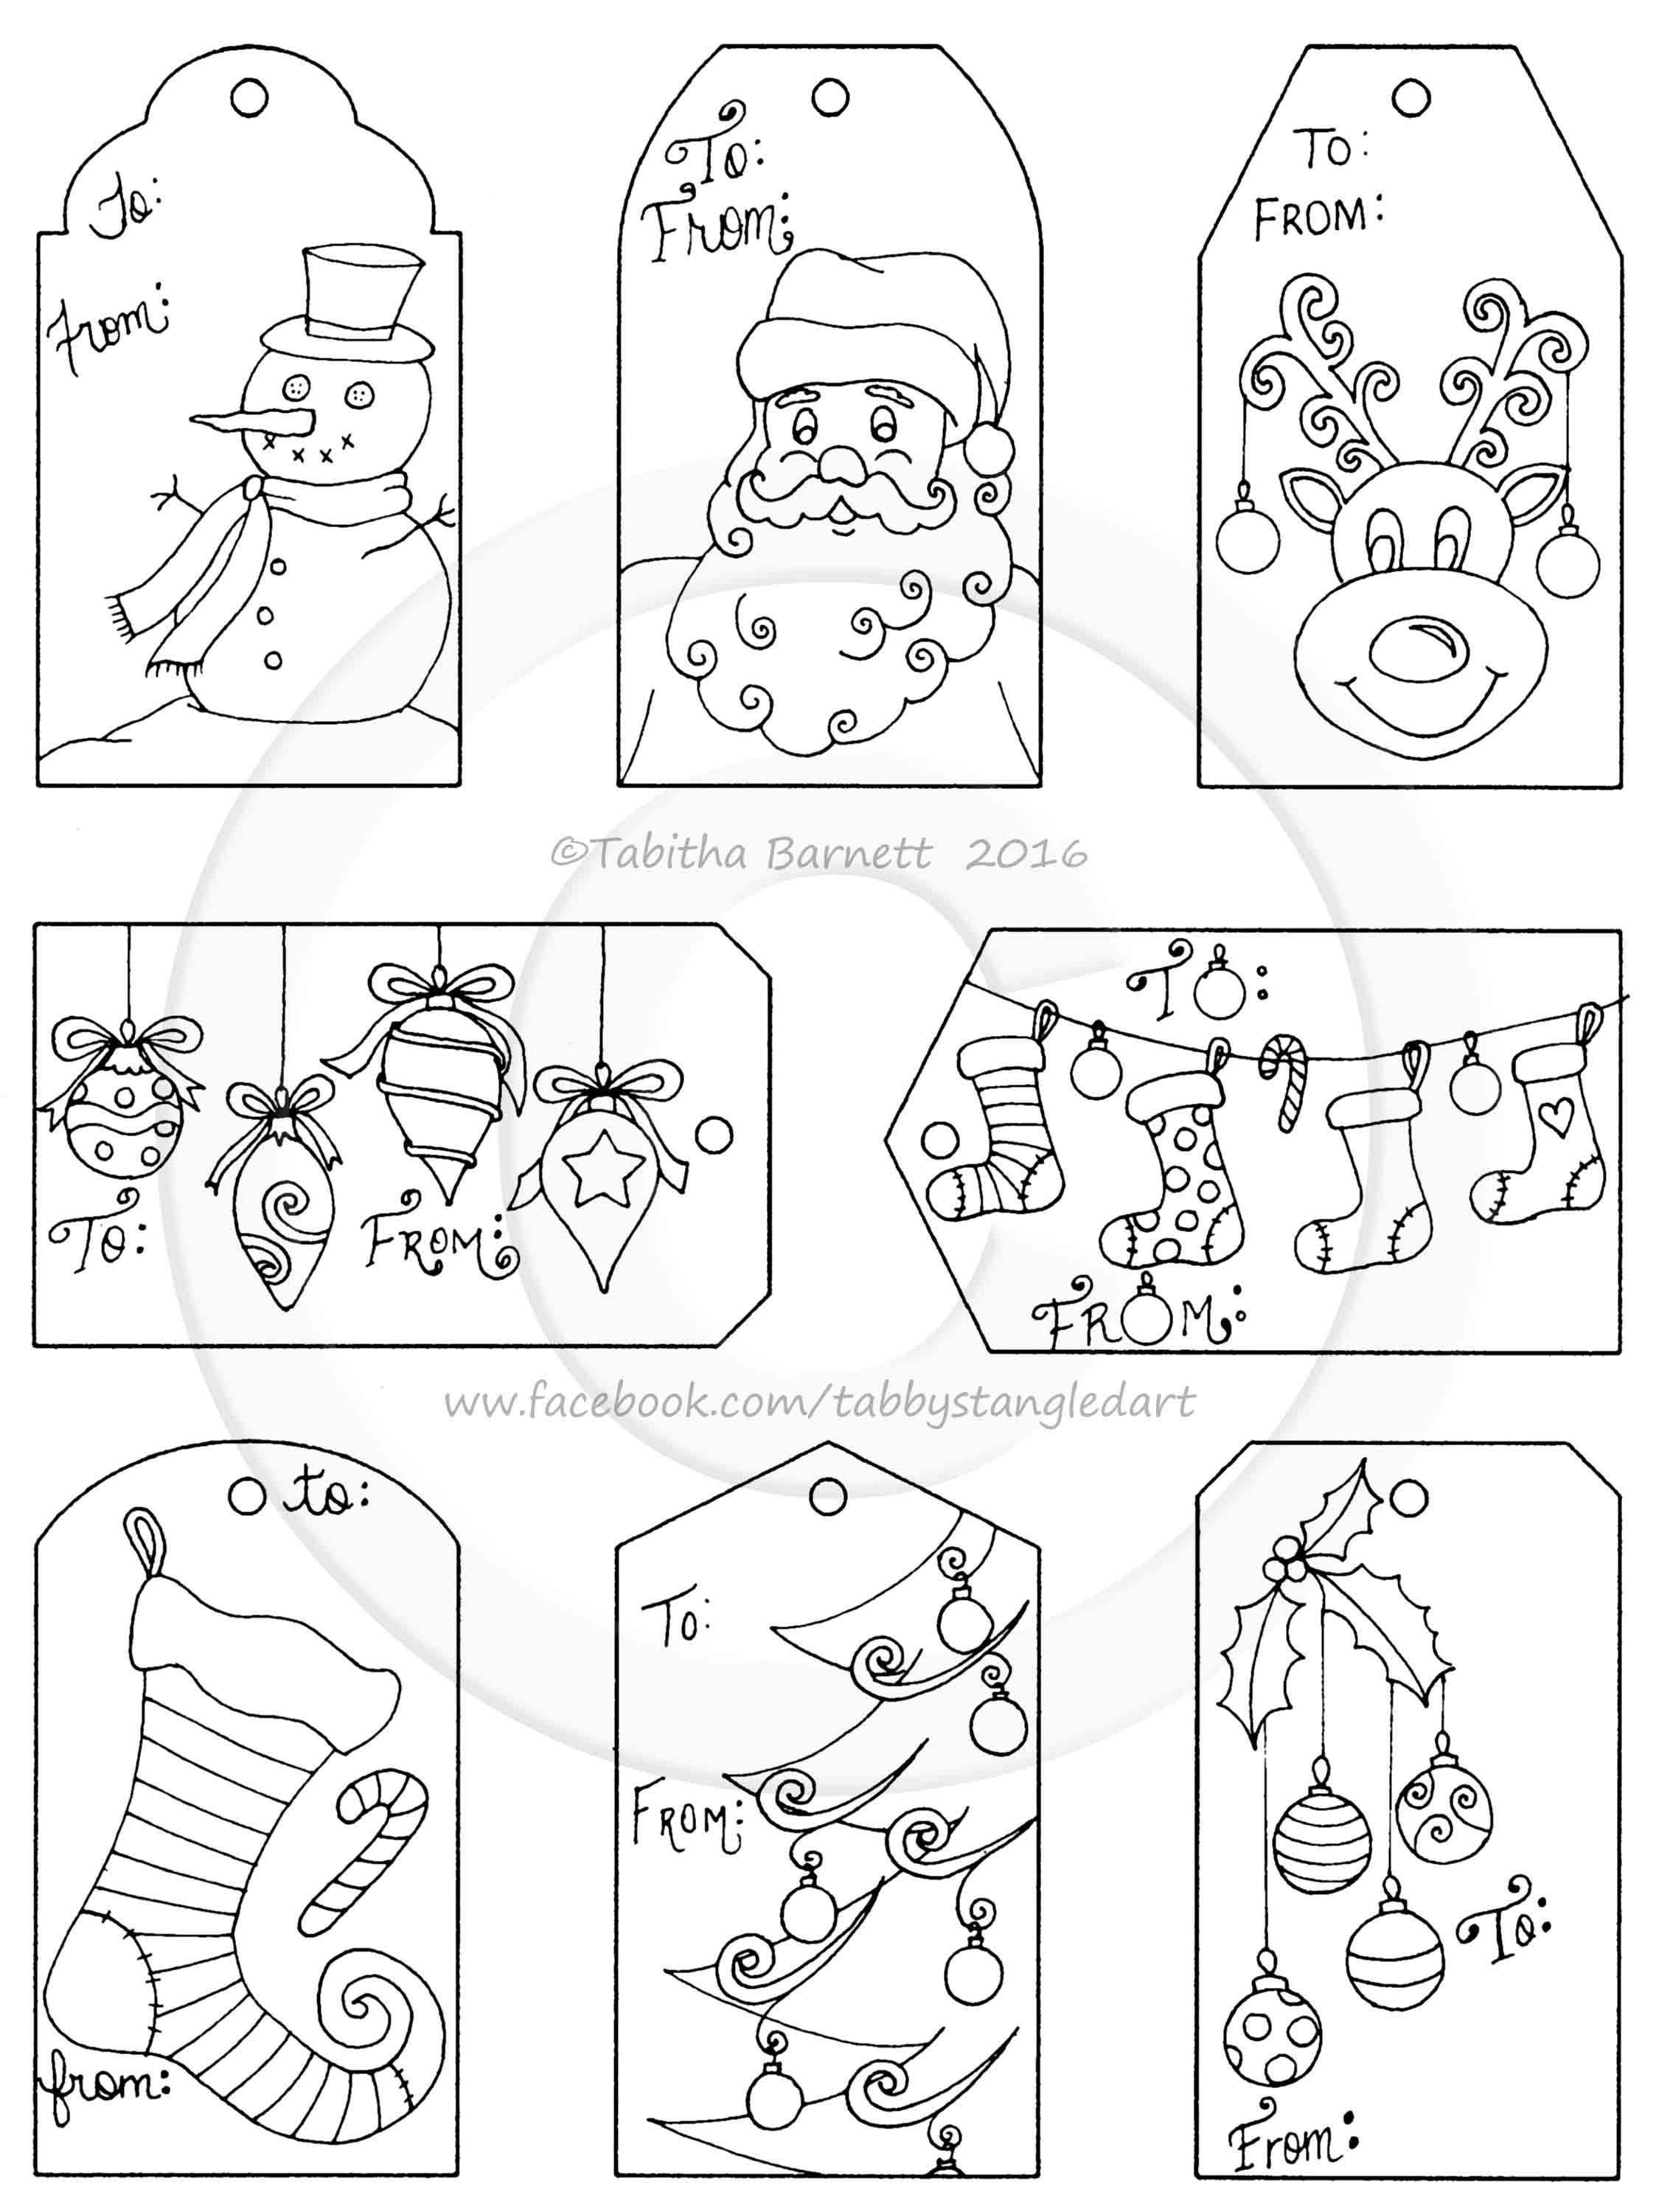 Print Color and Cut Hand Drawn Cute Christmas Gift Tags